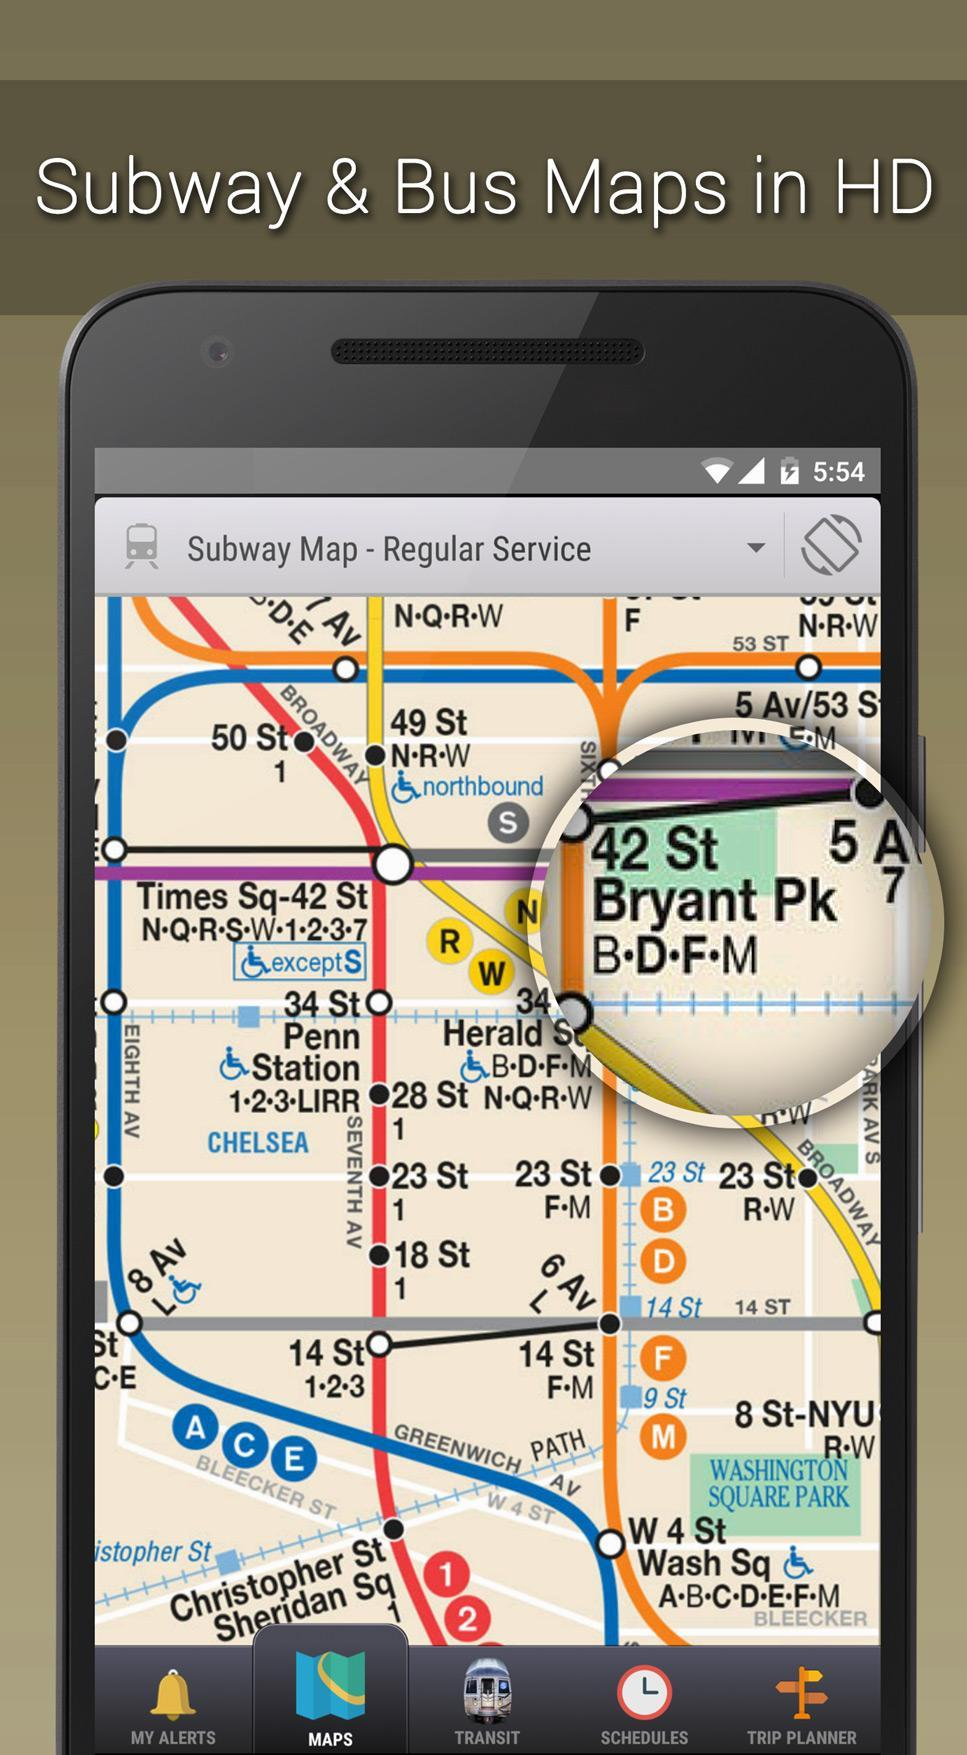 Best Mta Subway Map App For Android For New York City.Mytransit For Android Apk Download